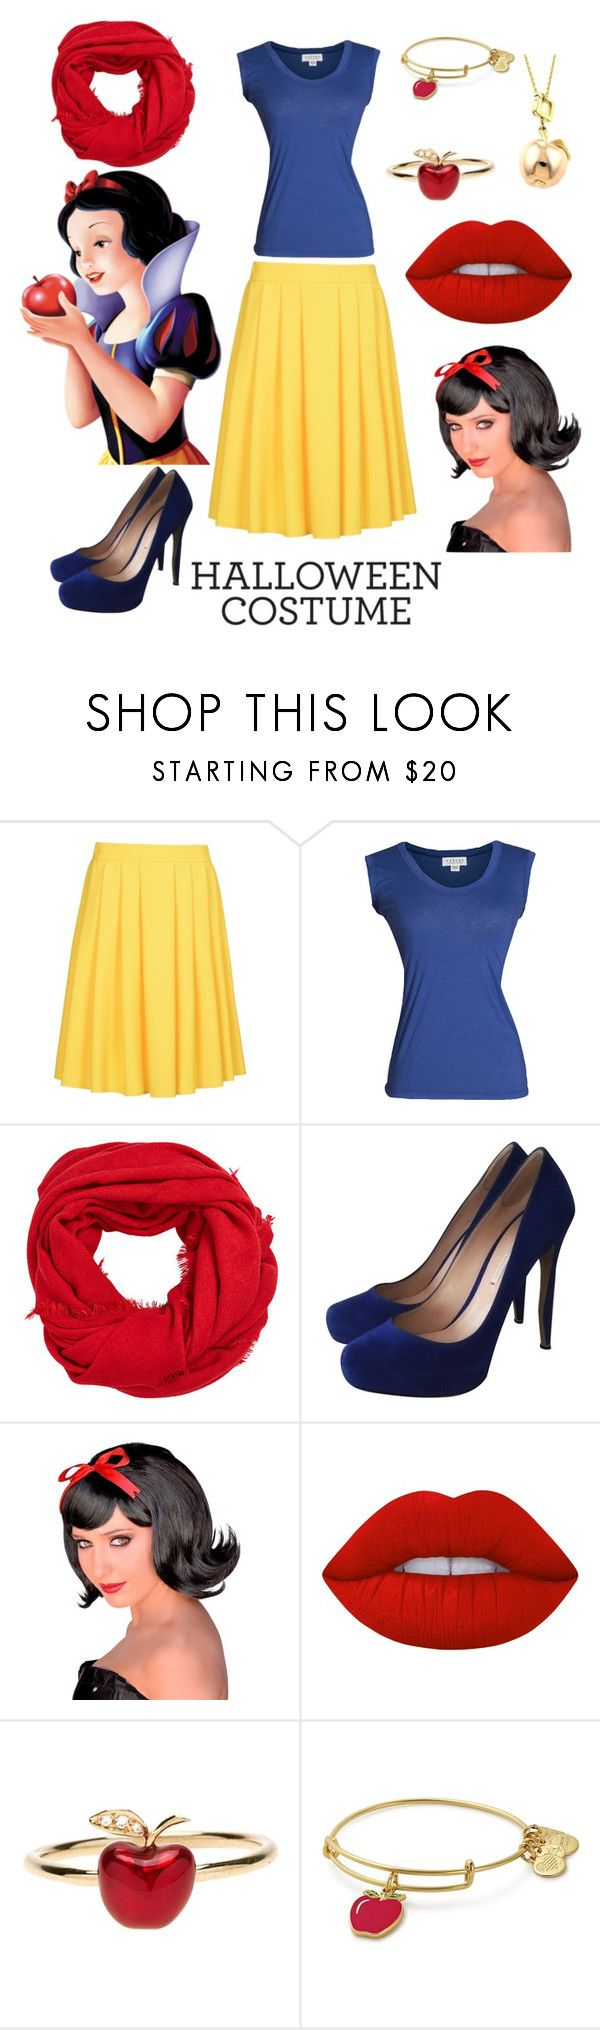 """Snow white"" by liljadoggh ❤ liked on Polyvore featuring 8, Velvet by Graham & Spencer, MANGO, Nicholas Kirkwood, Lime Crime, Alison Lou, Alex and Ani and Louis Vuitton"